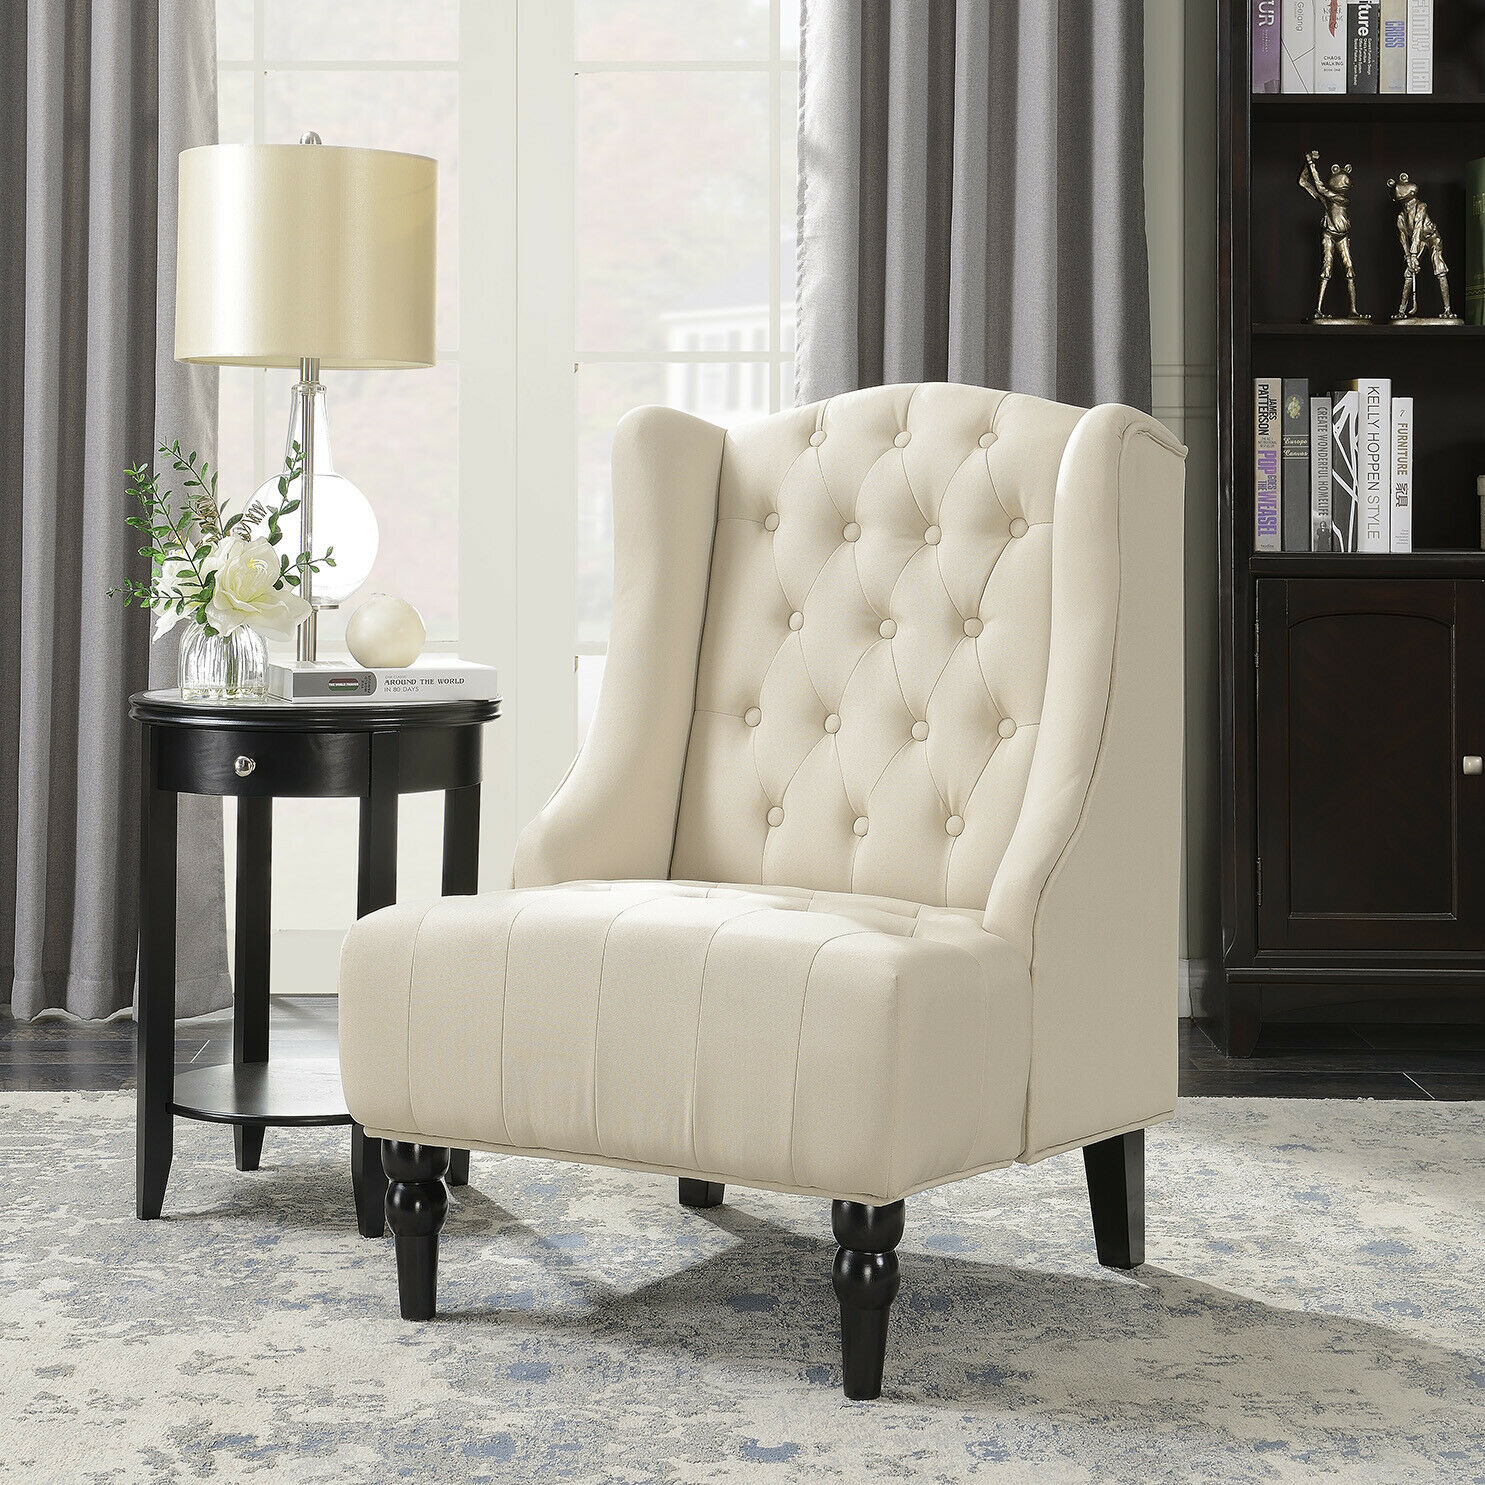 Astounding New French Vintage Inspired Tall Wingback Light Beige Tufted Fabric Accent Chair Evergreenethics Interior Chair Design Evergreenethicsorg